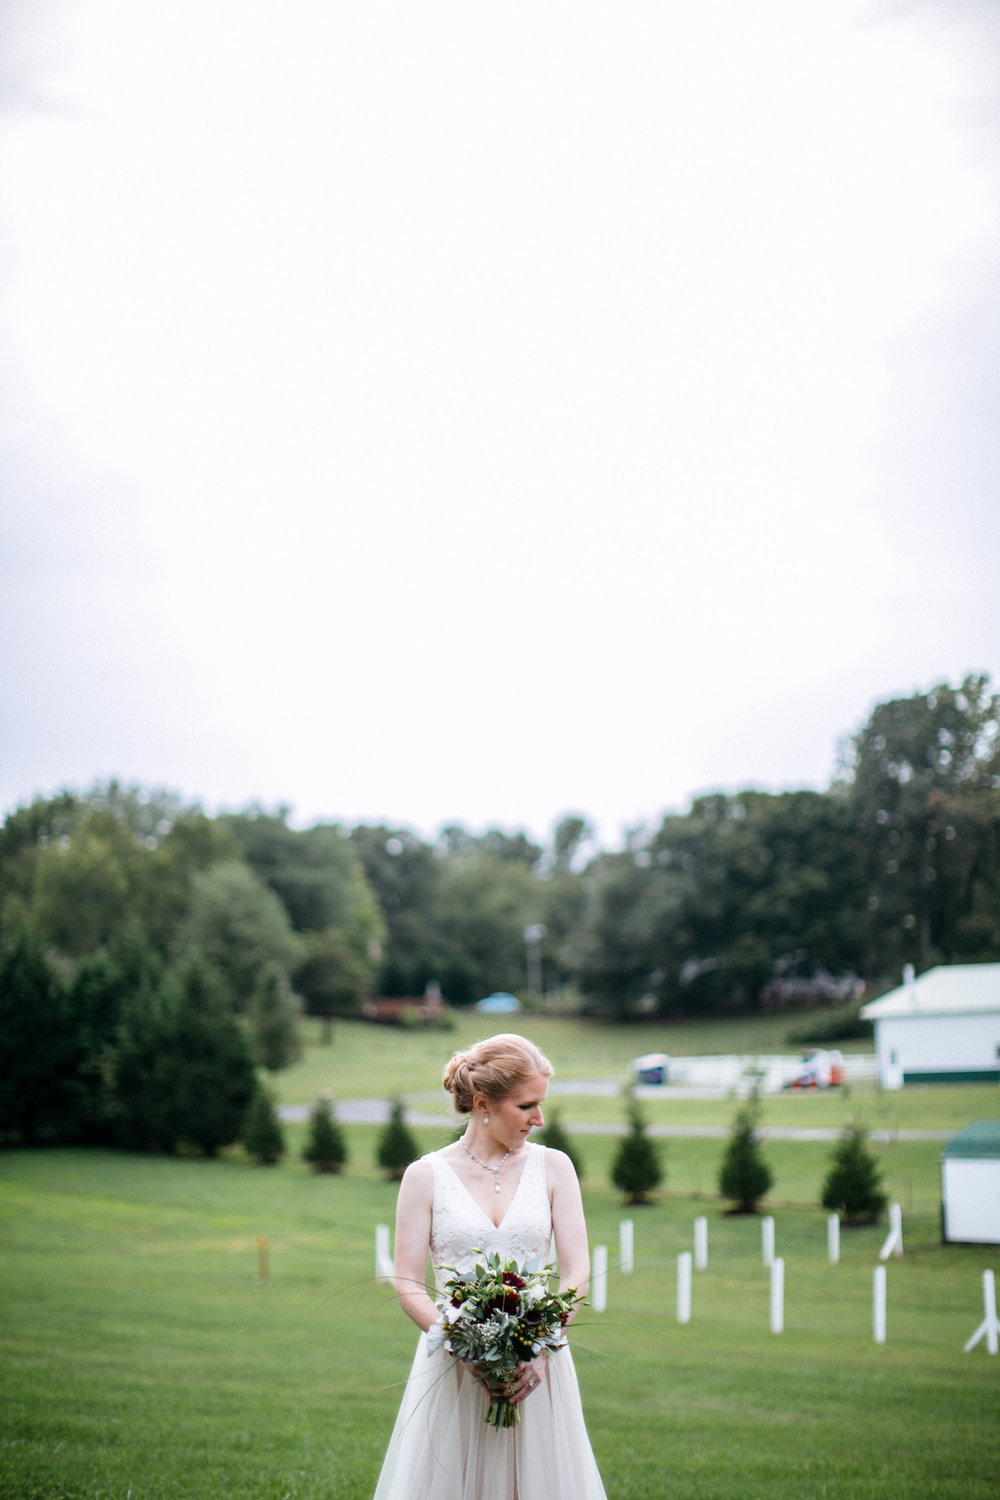 183-northern-virginia-wedding-photography.jpg